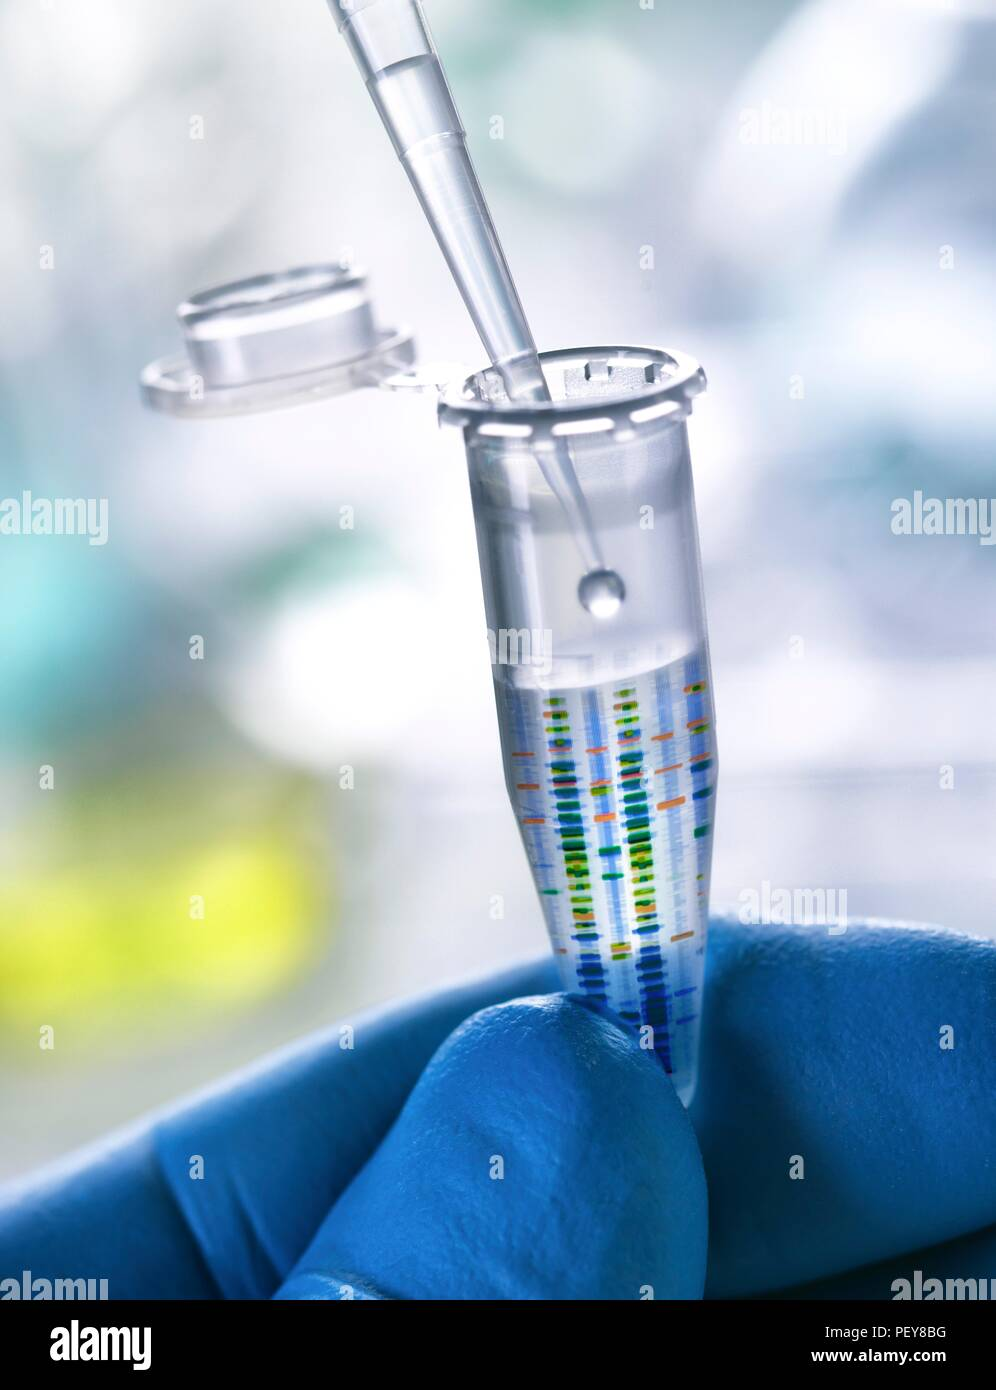 Composite image of DNA (deoxyribonucleic acid) test results on an Eppendorf tube containing a DNA sample. Stock Photo